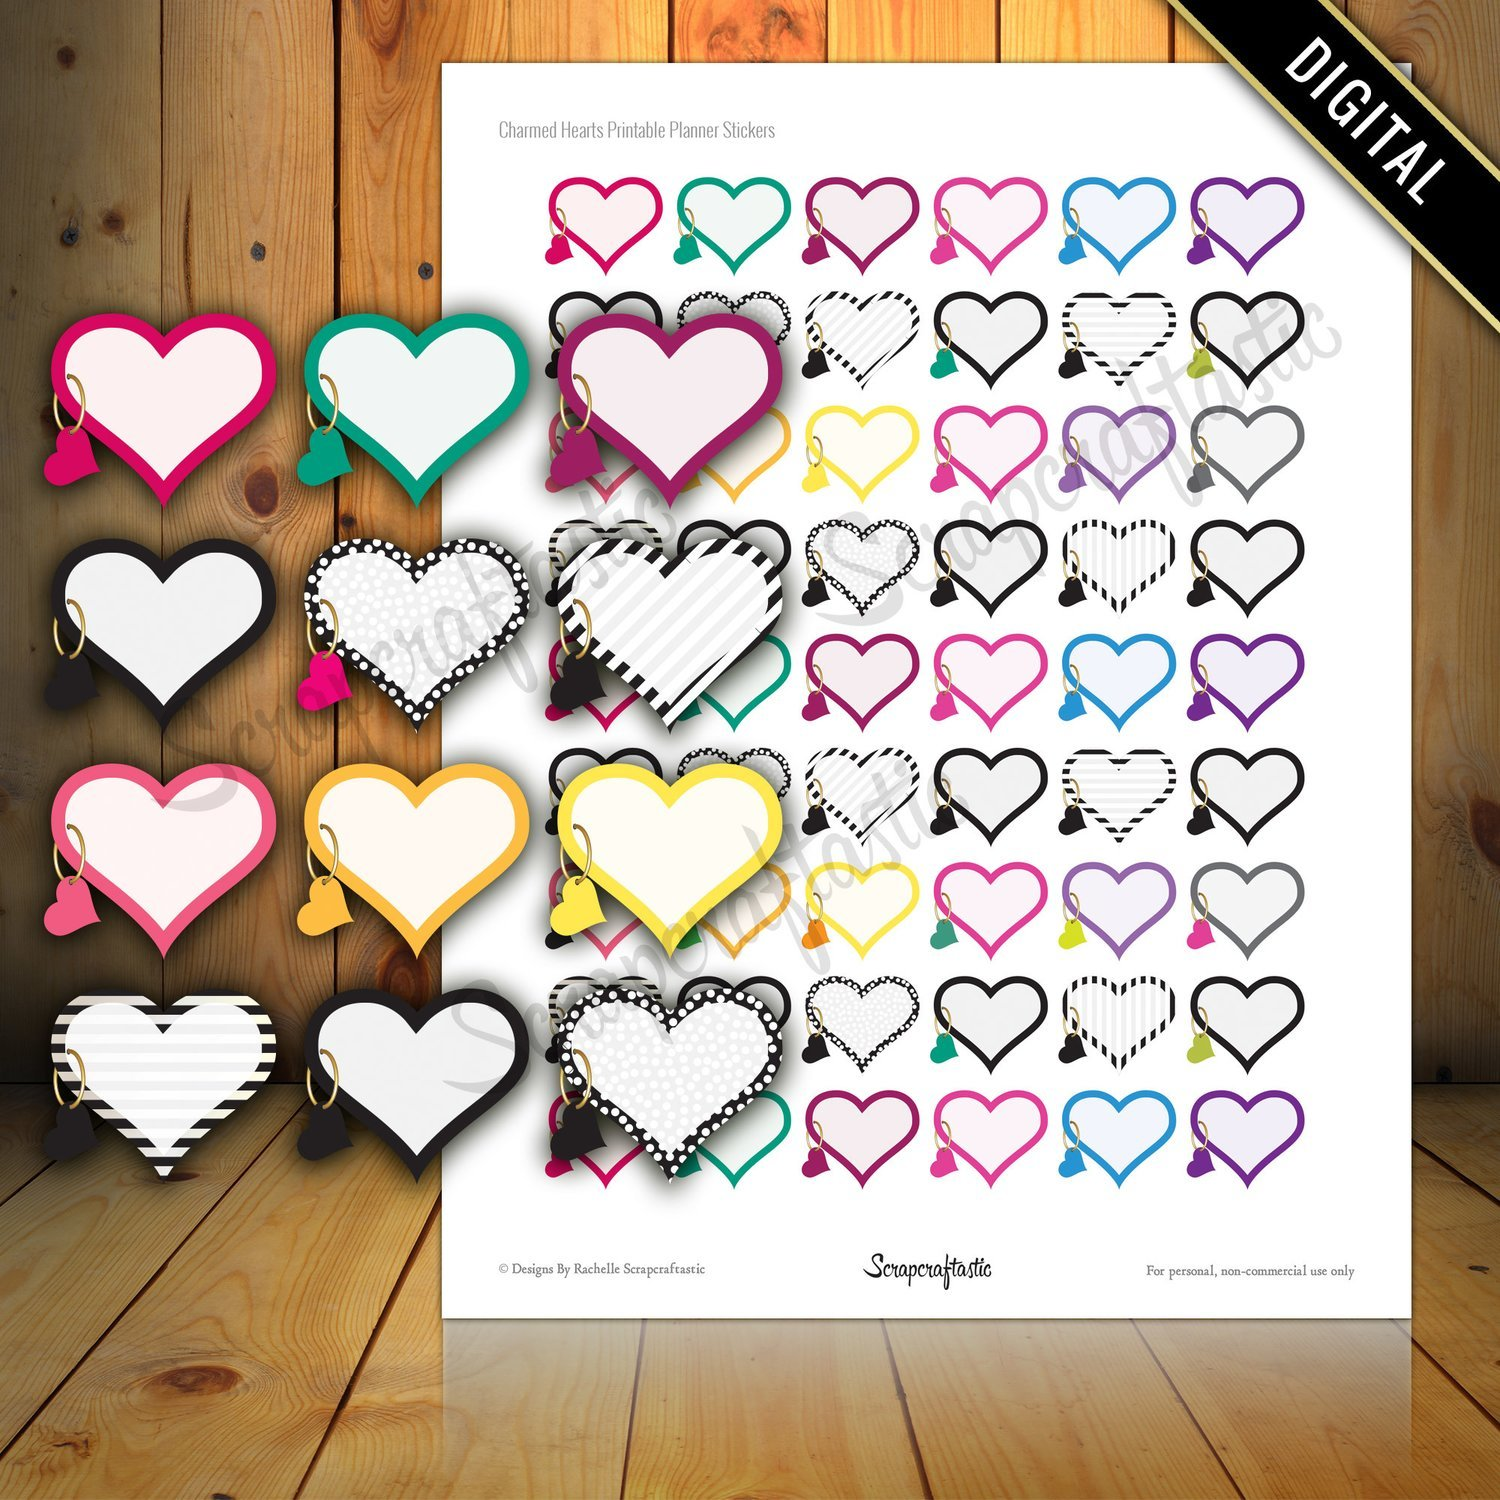 Charmed Hearts Printable Planner Stickers for Paper Planners, Agendas and Organizers